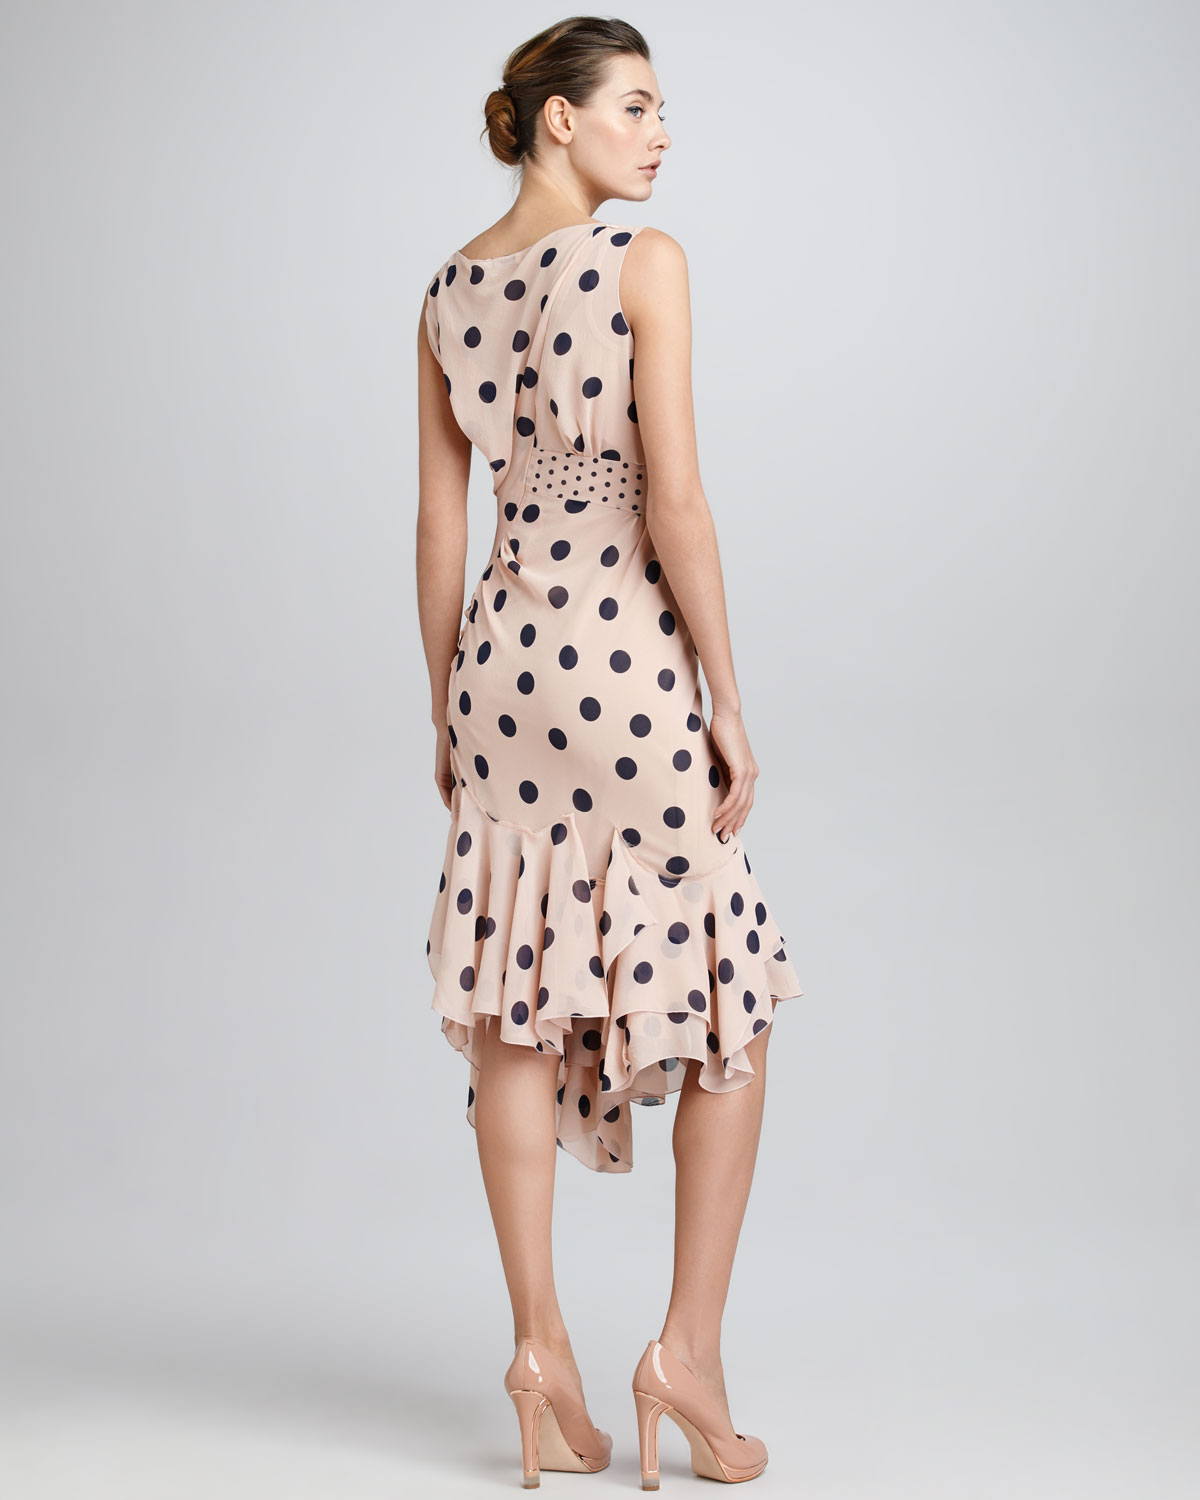 Lyst - Nina Ricci Sideruched Polka Dot Dress Terracottablue in Pink faa95a4e4